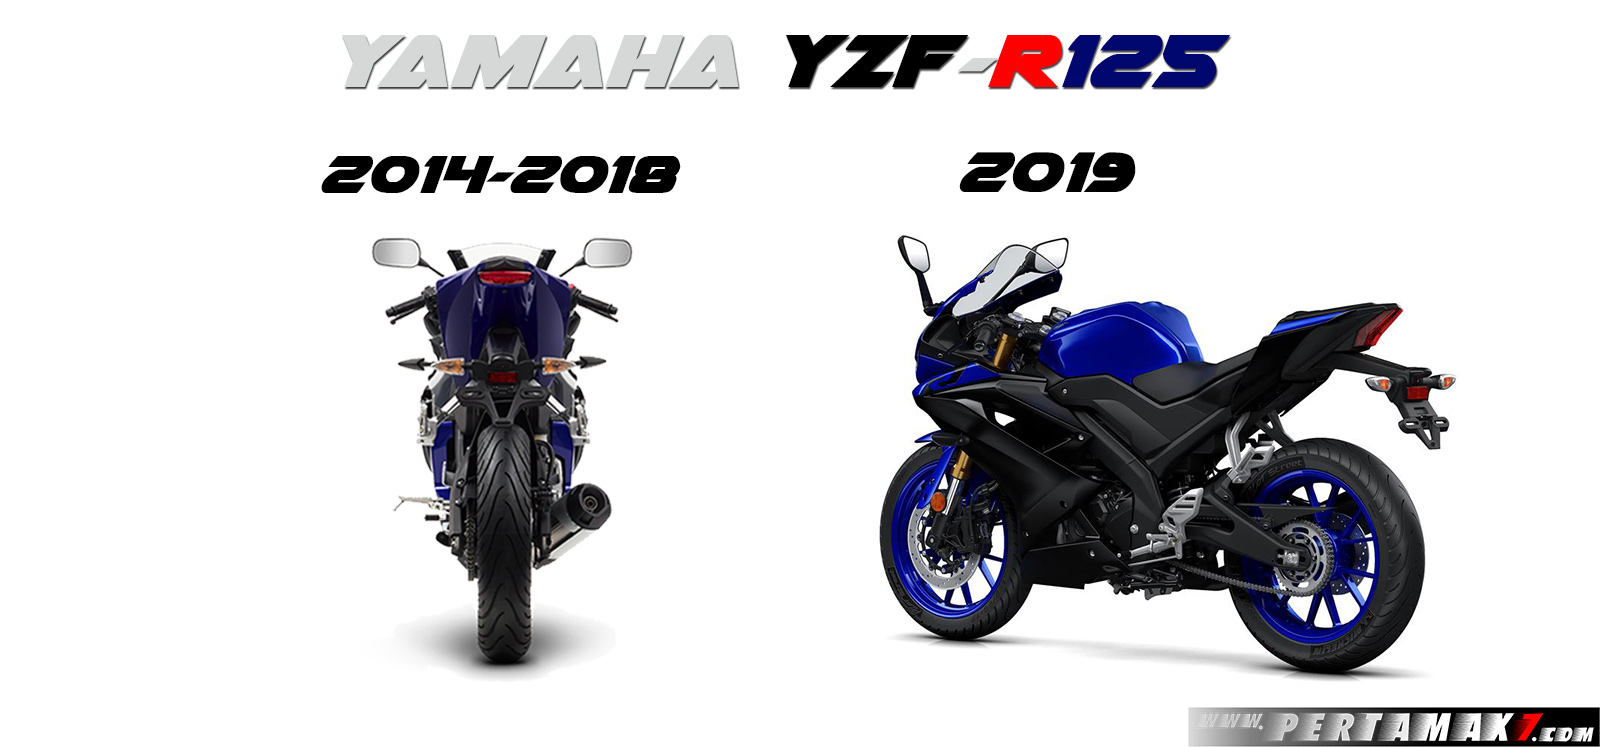 Yamaha R125 MY2014 VS R125 MY2019 Tailight